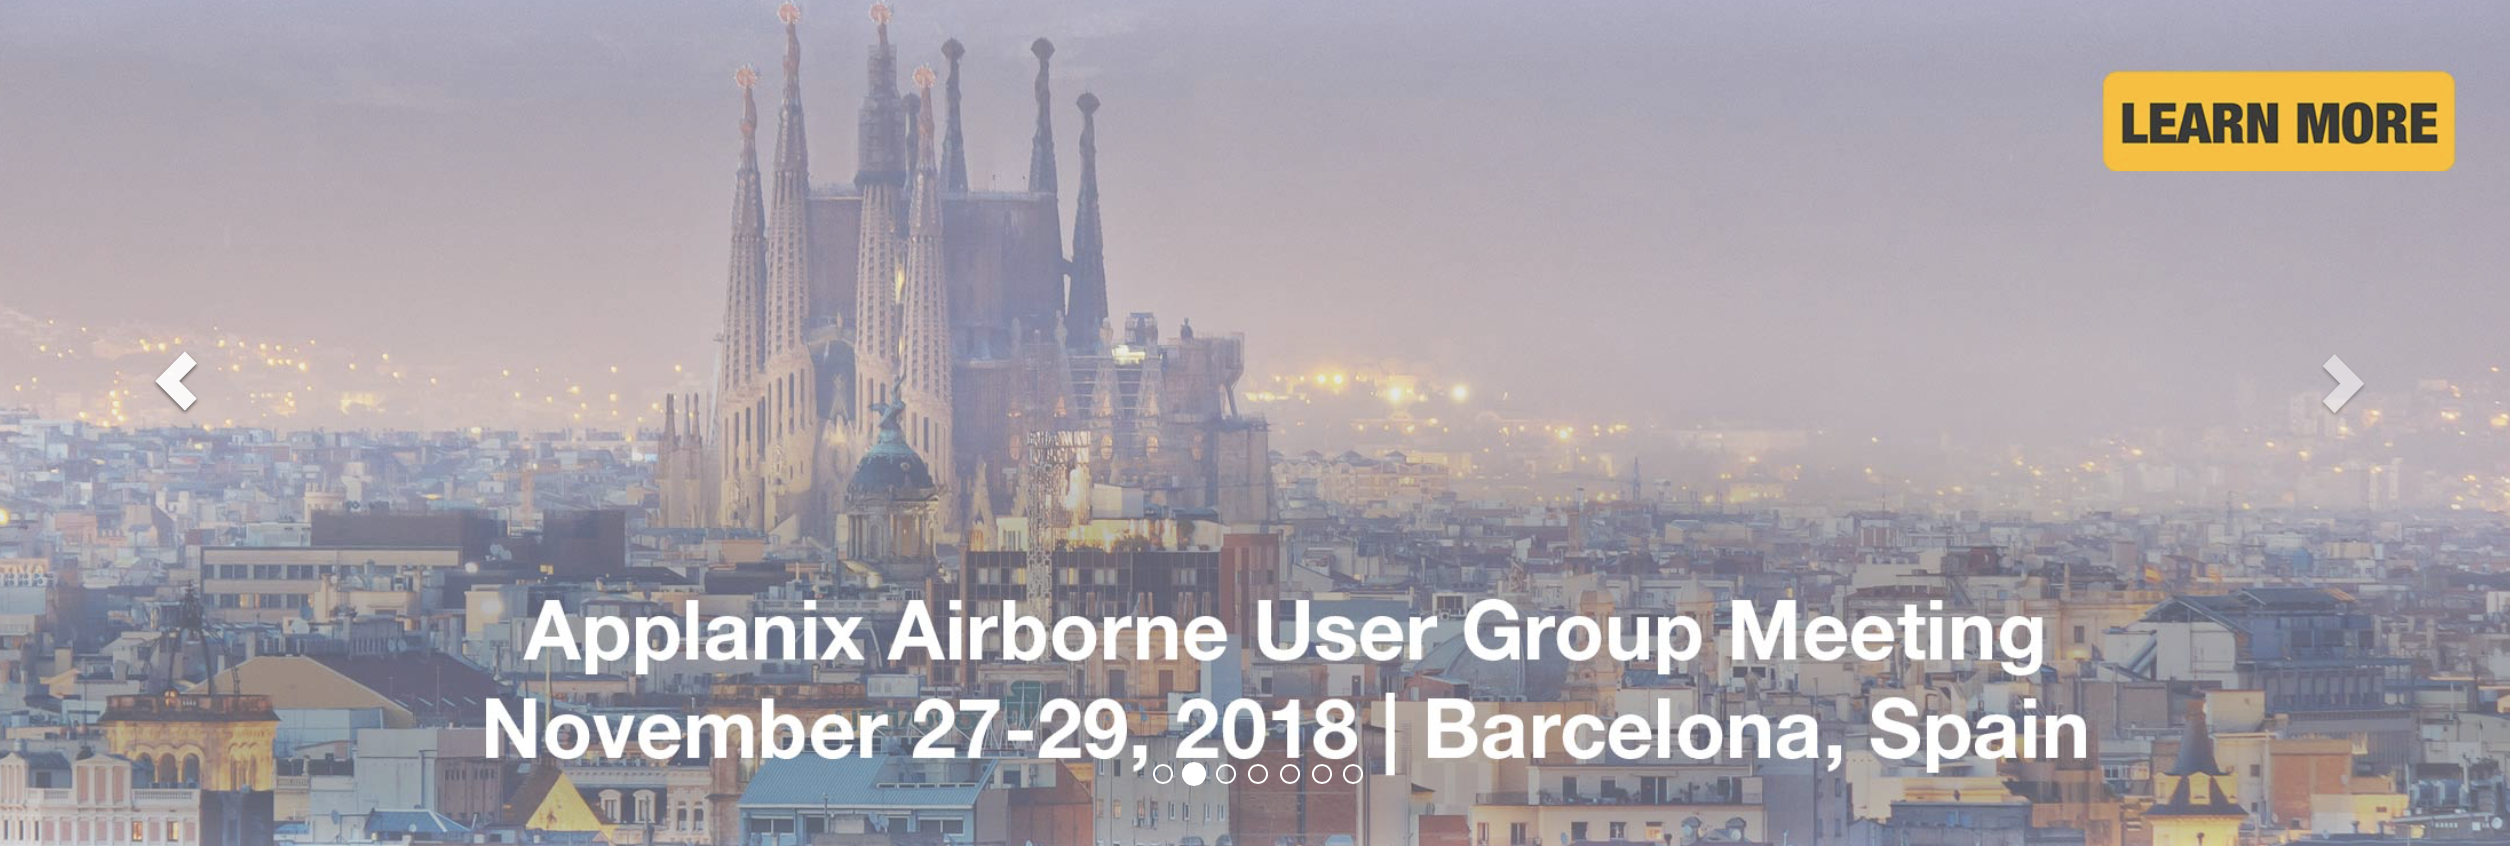 Barcelona the Site for Applanix Airborne User Group Event